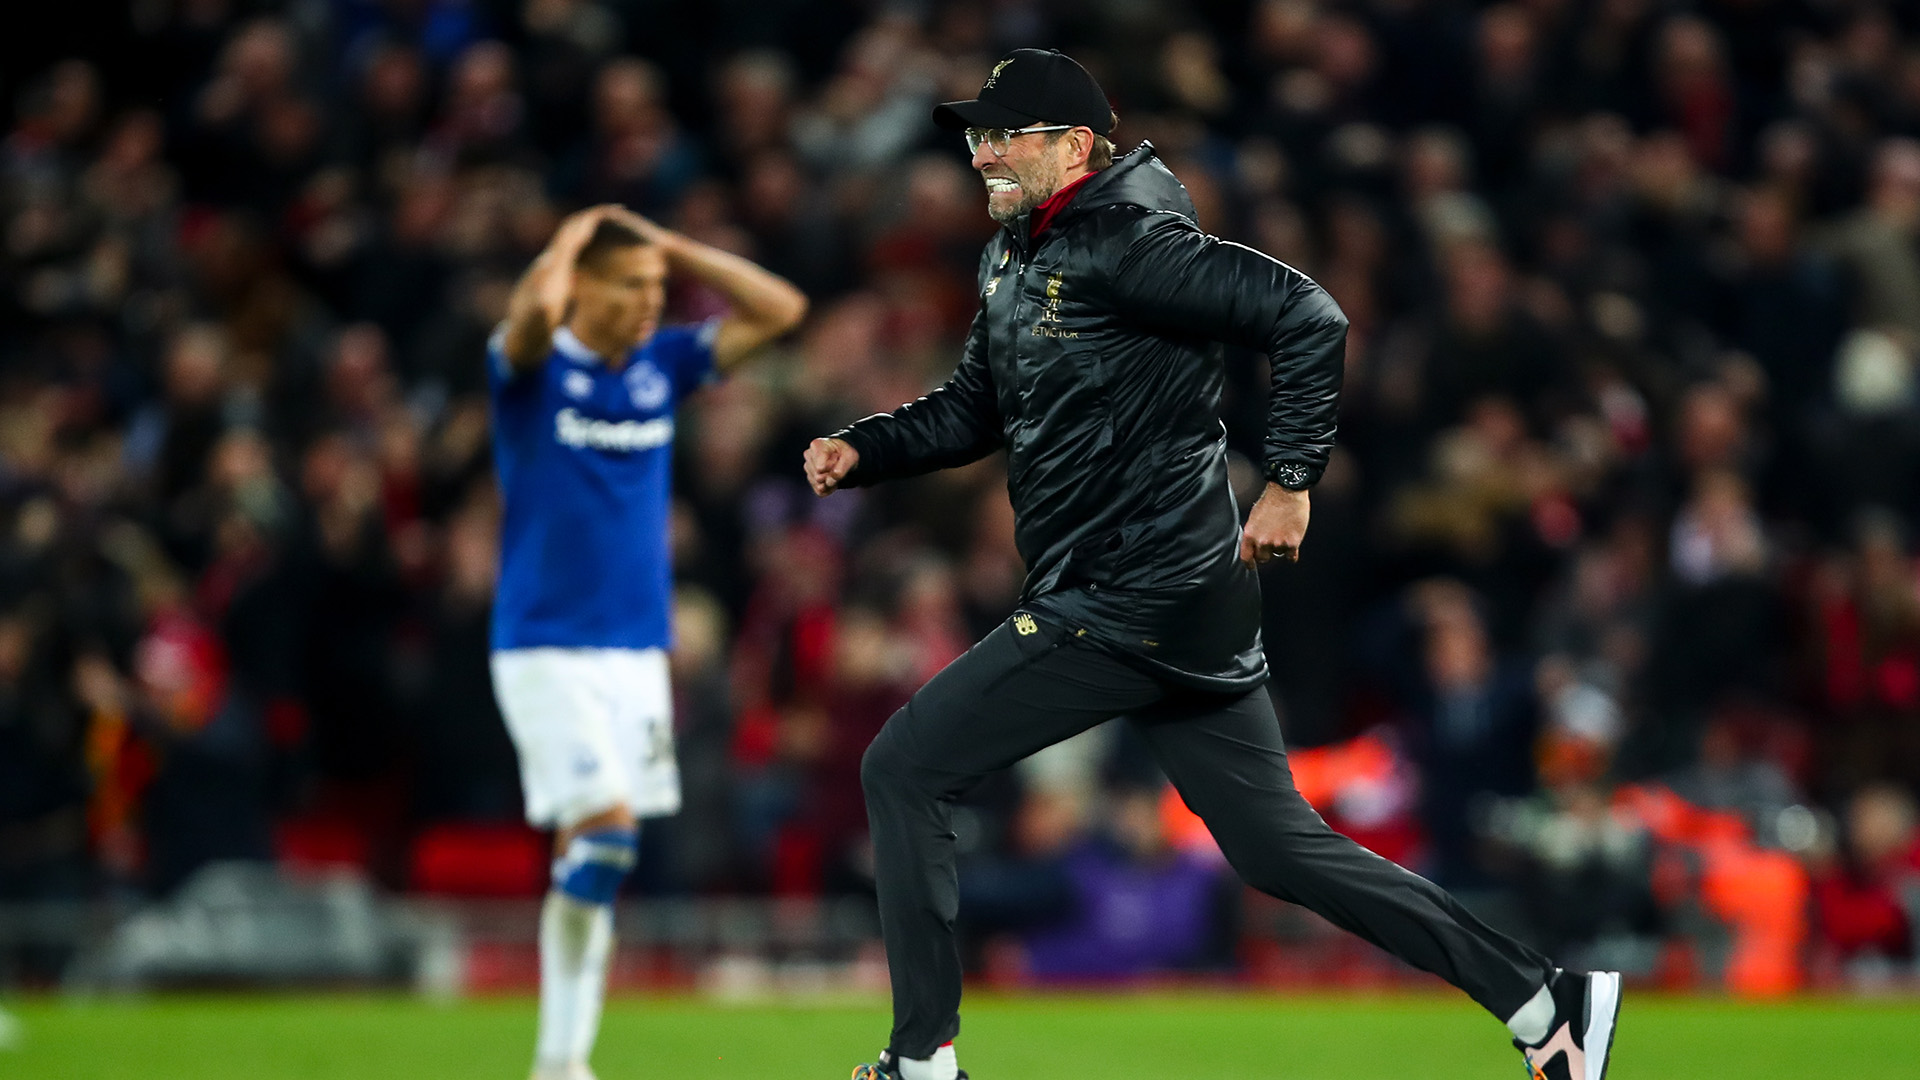 Klopp Apologizes For Overzealous Celebrations In Derby Win